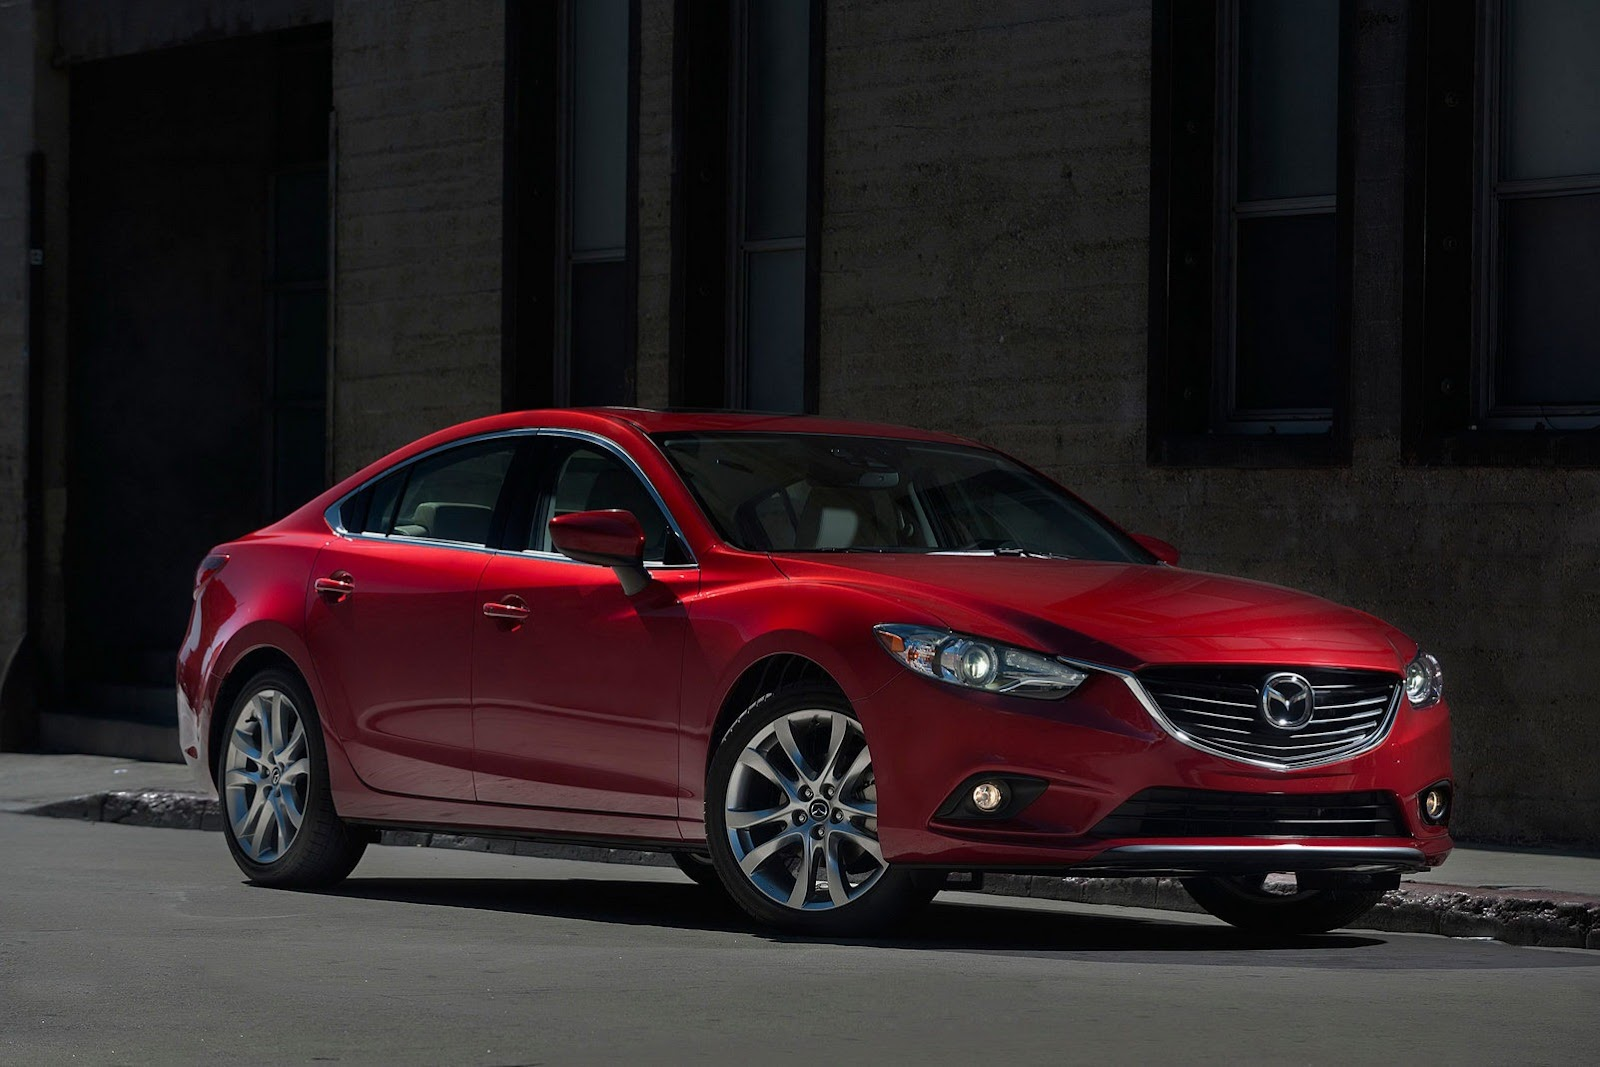 cars news 2014 mazda6 to be offered with 2 2 liter turbo diesel from next year. Black Bedroom Furniture Sets. Home Design Ideas